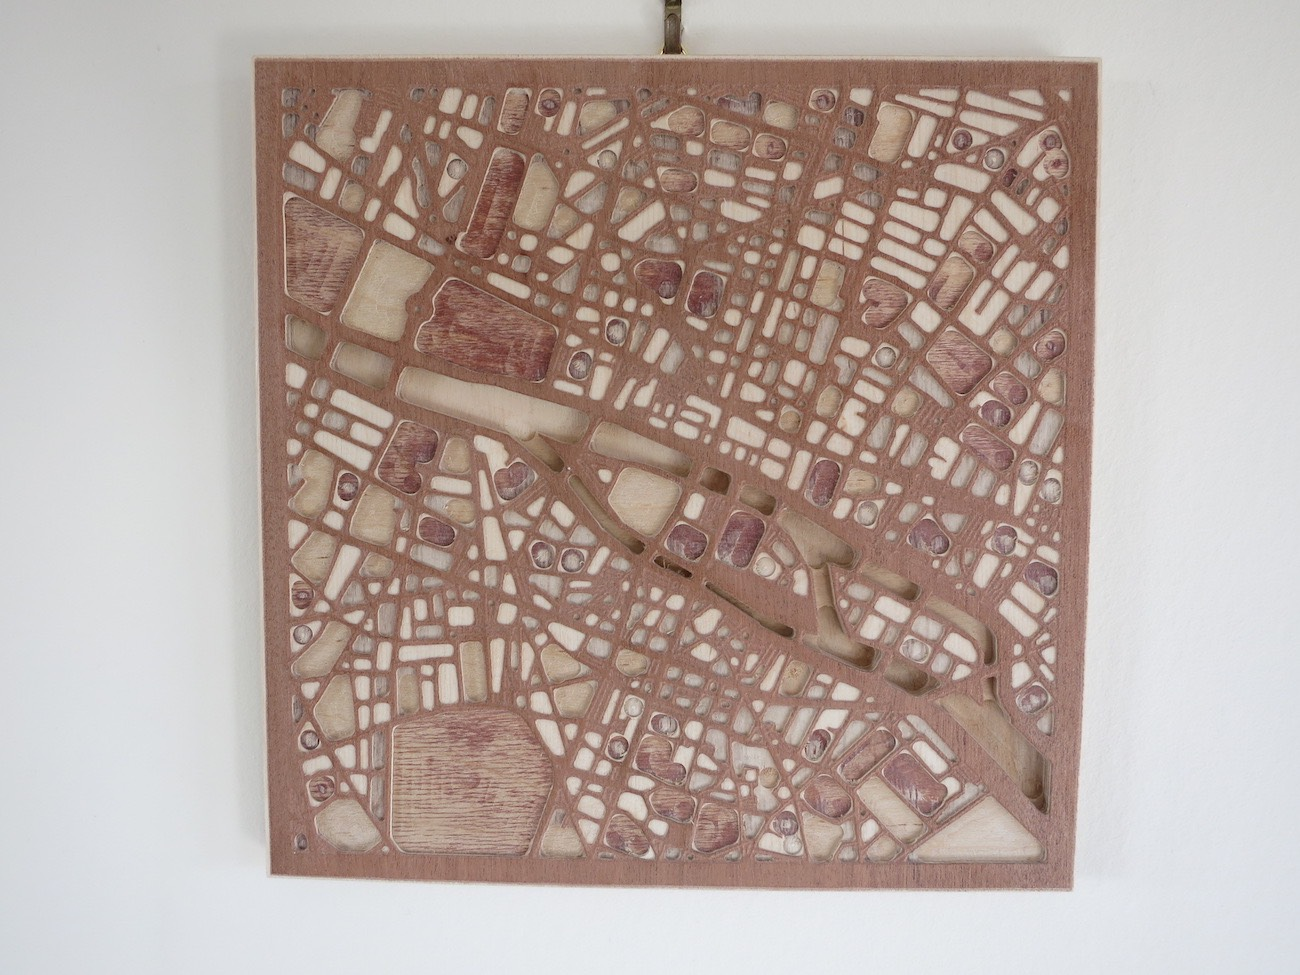 Carved 3D Wooden Street Maps